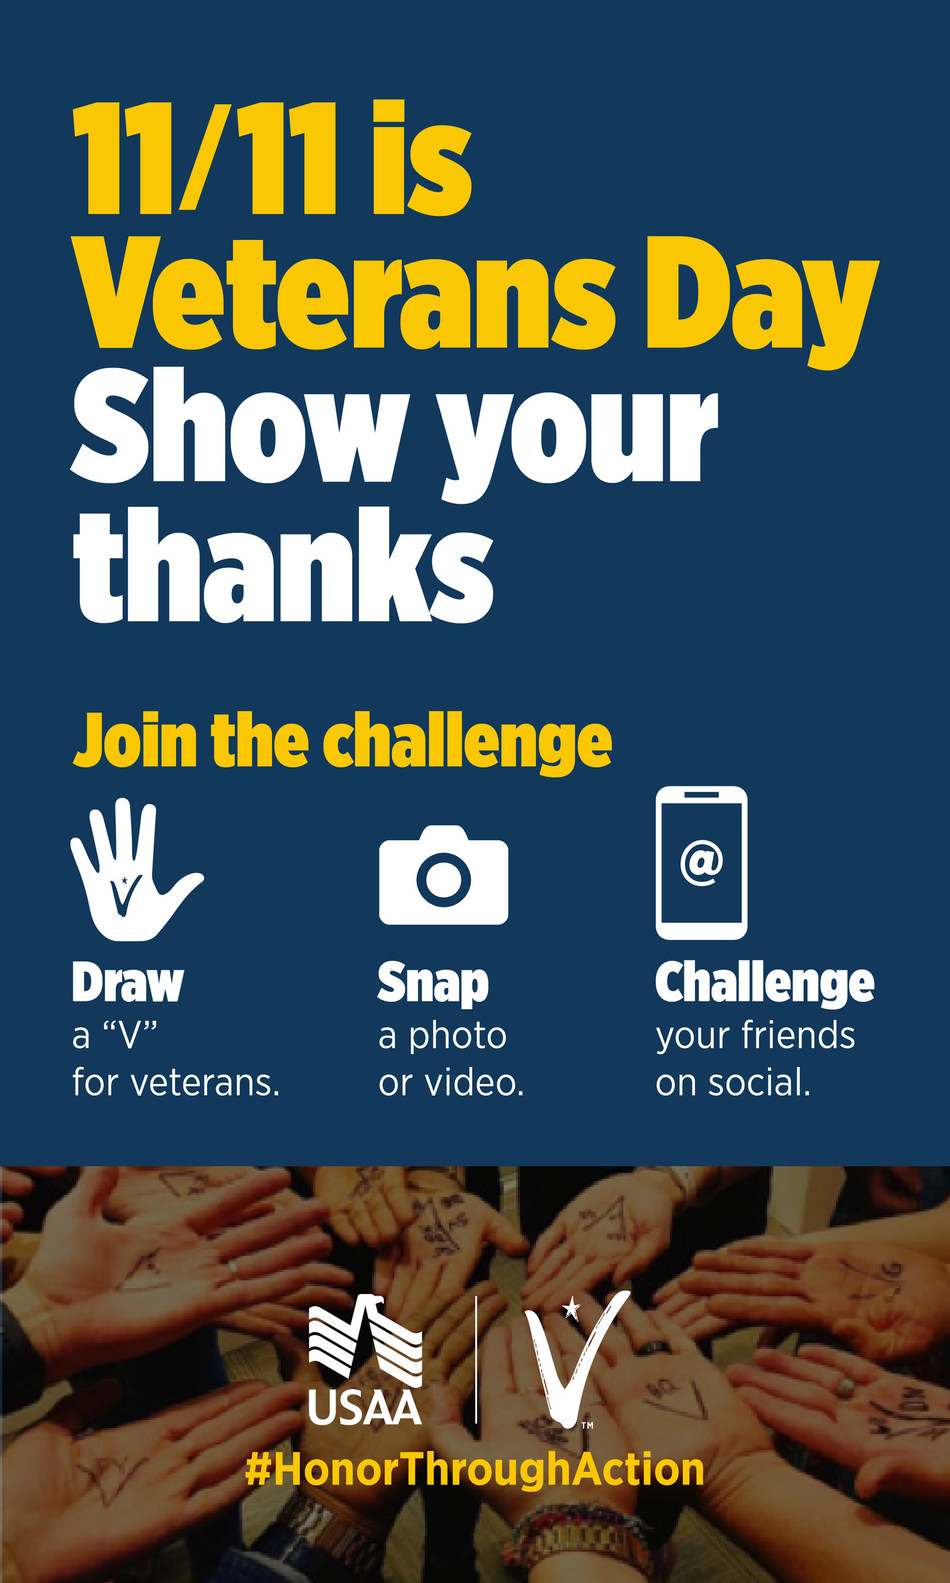 USAA encourages all to join the challenge and celebrate the more than 18 million veterans in the U.S. To learn more, visit usaa.com/veteransday.